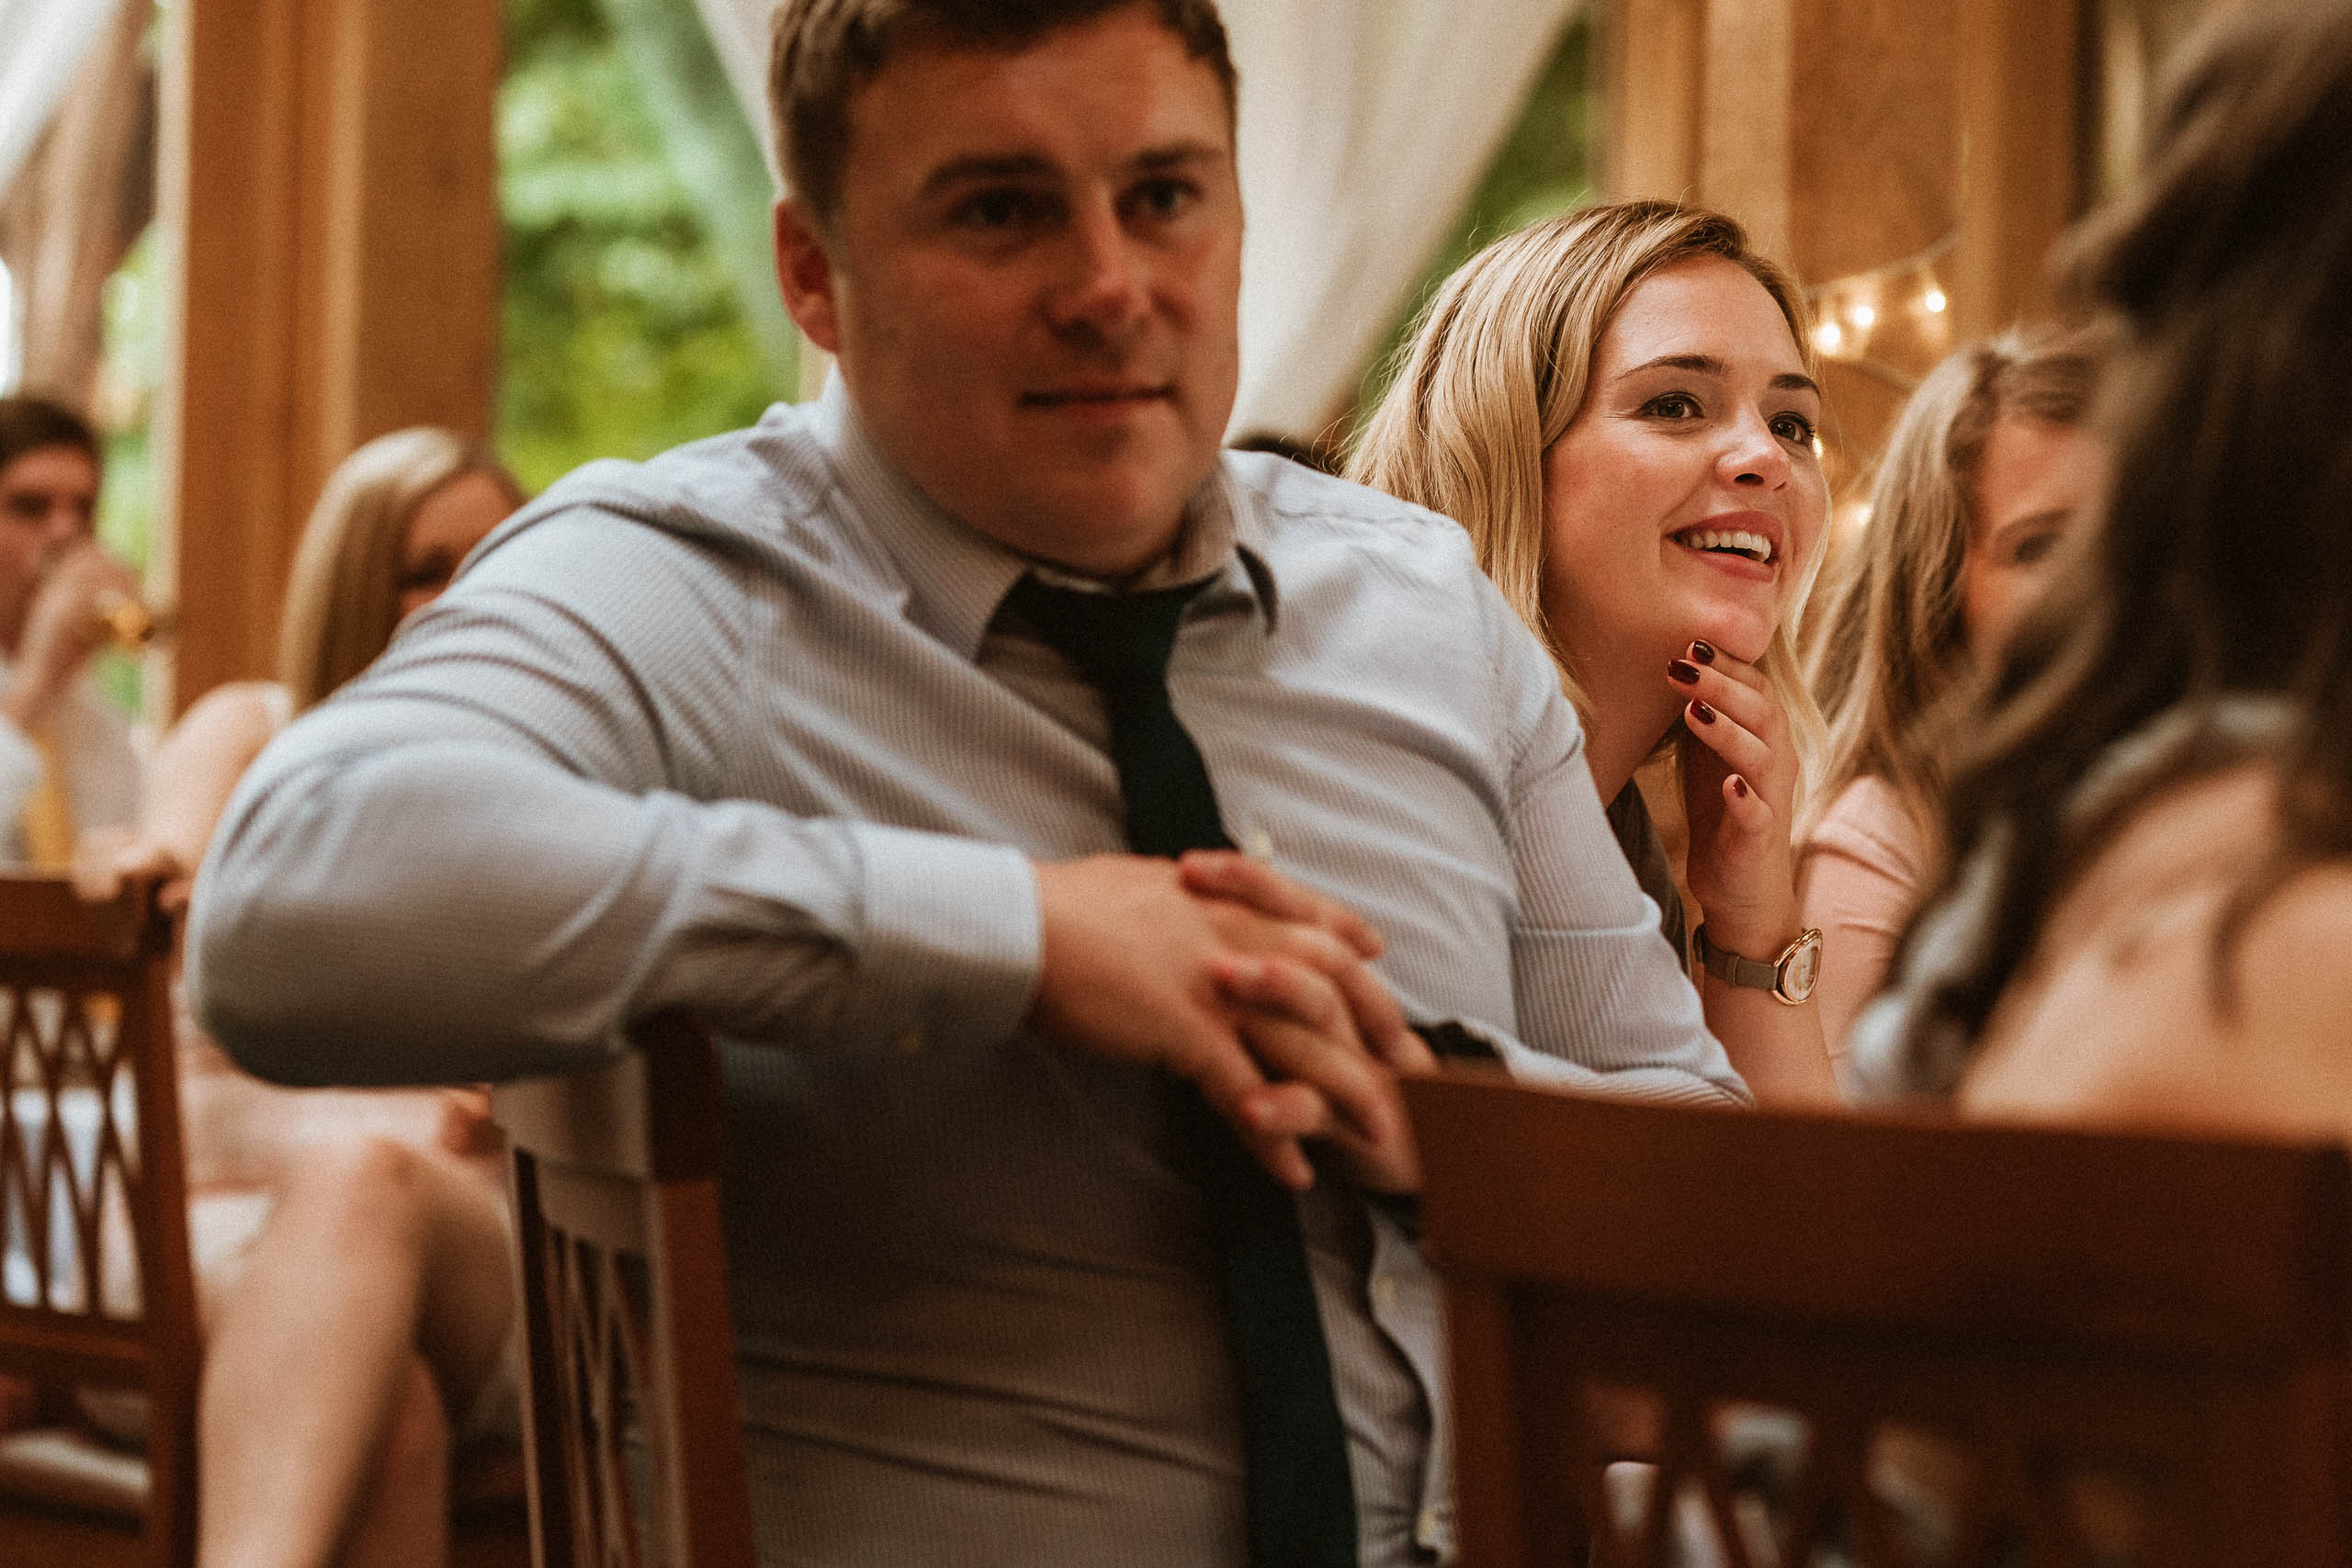 female wedding guest smiling at speeches